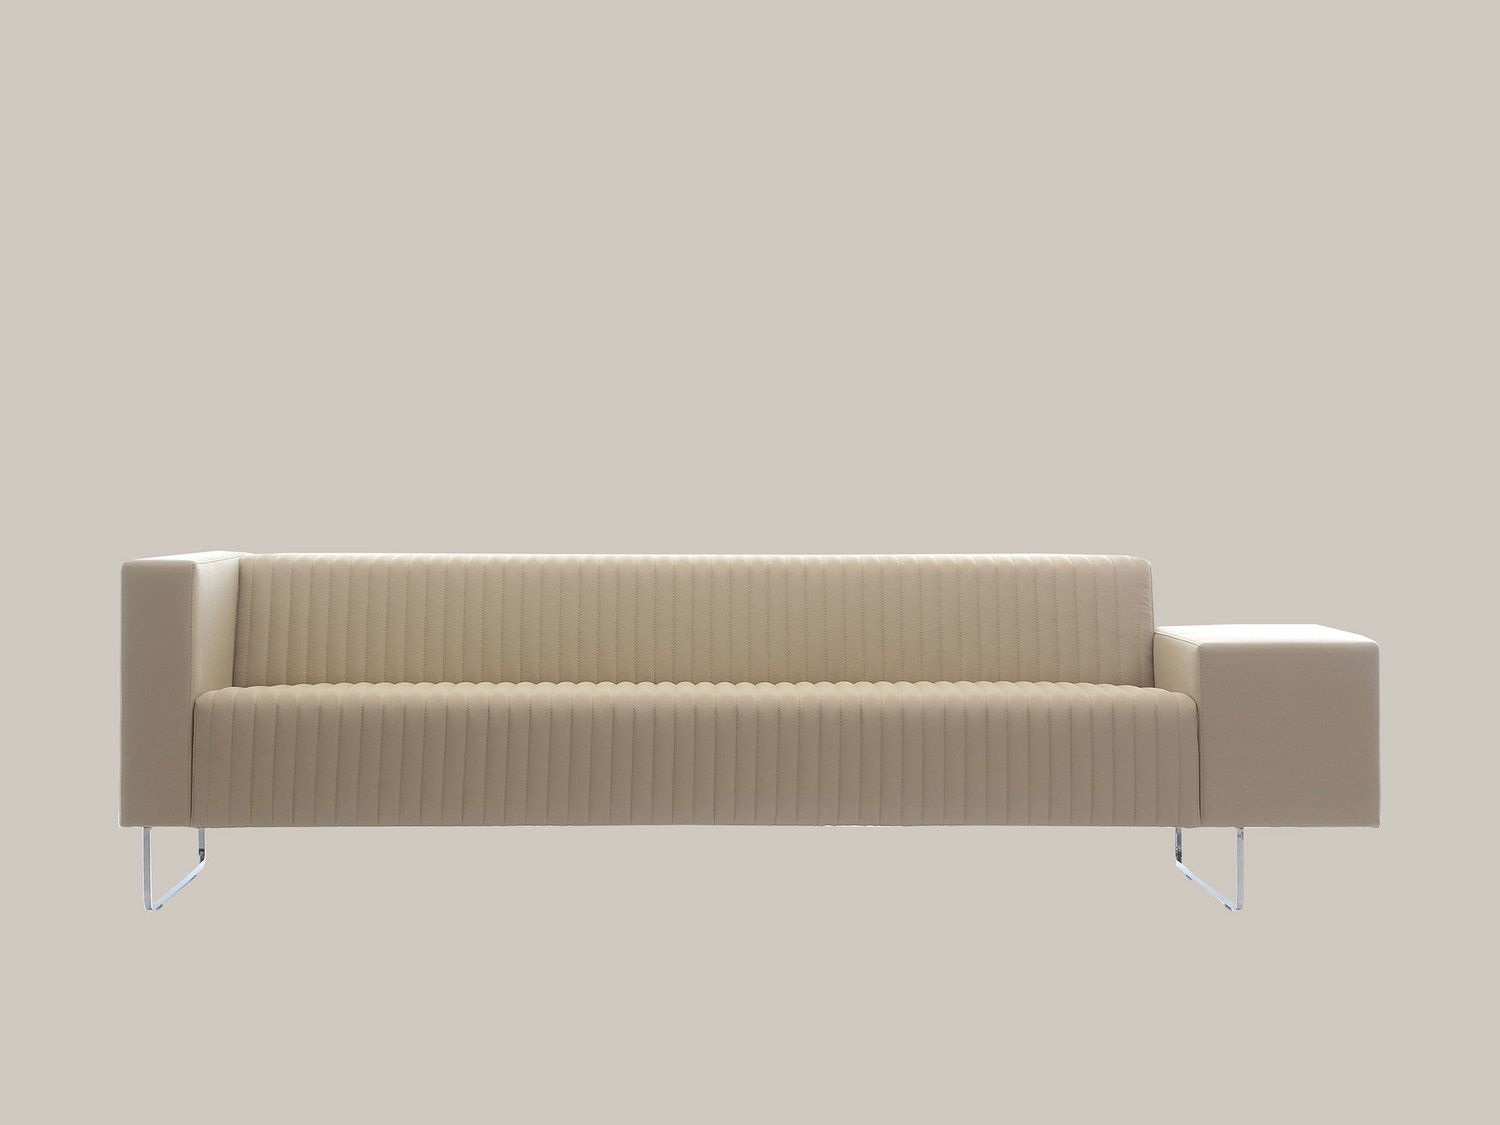 Mona S Sofa Design Interior Furniture Furniture